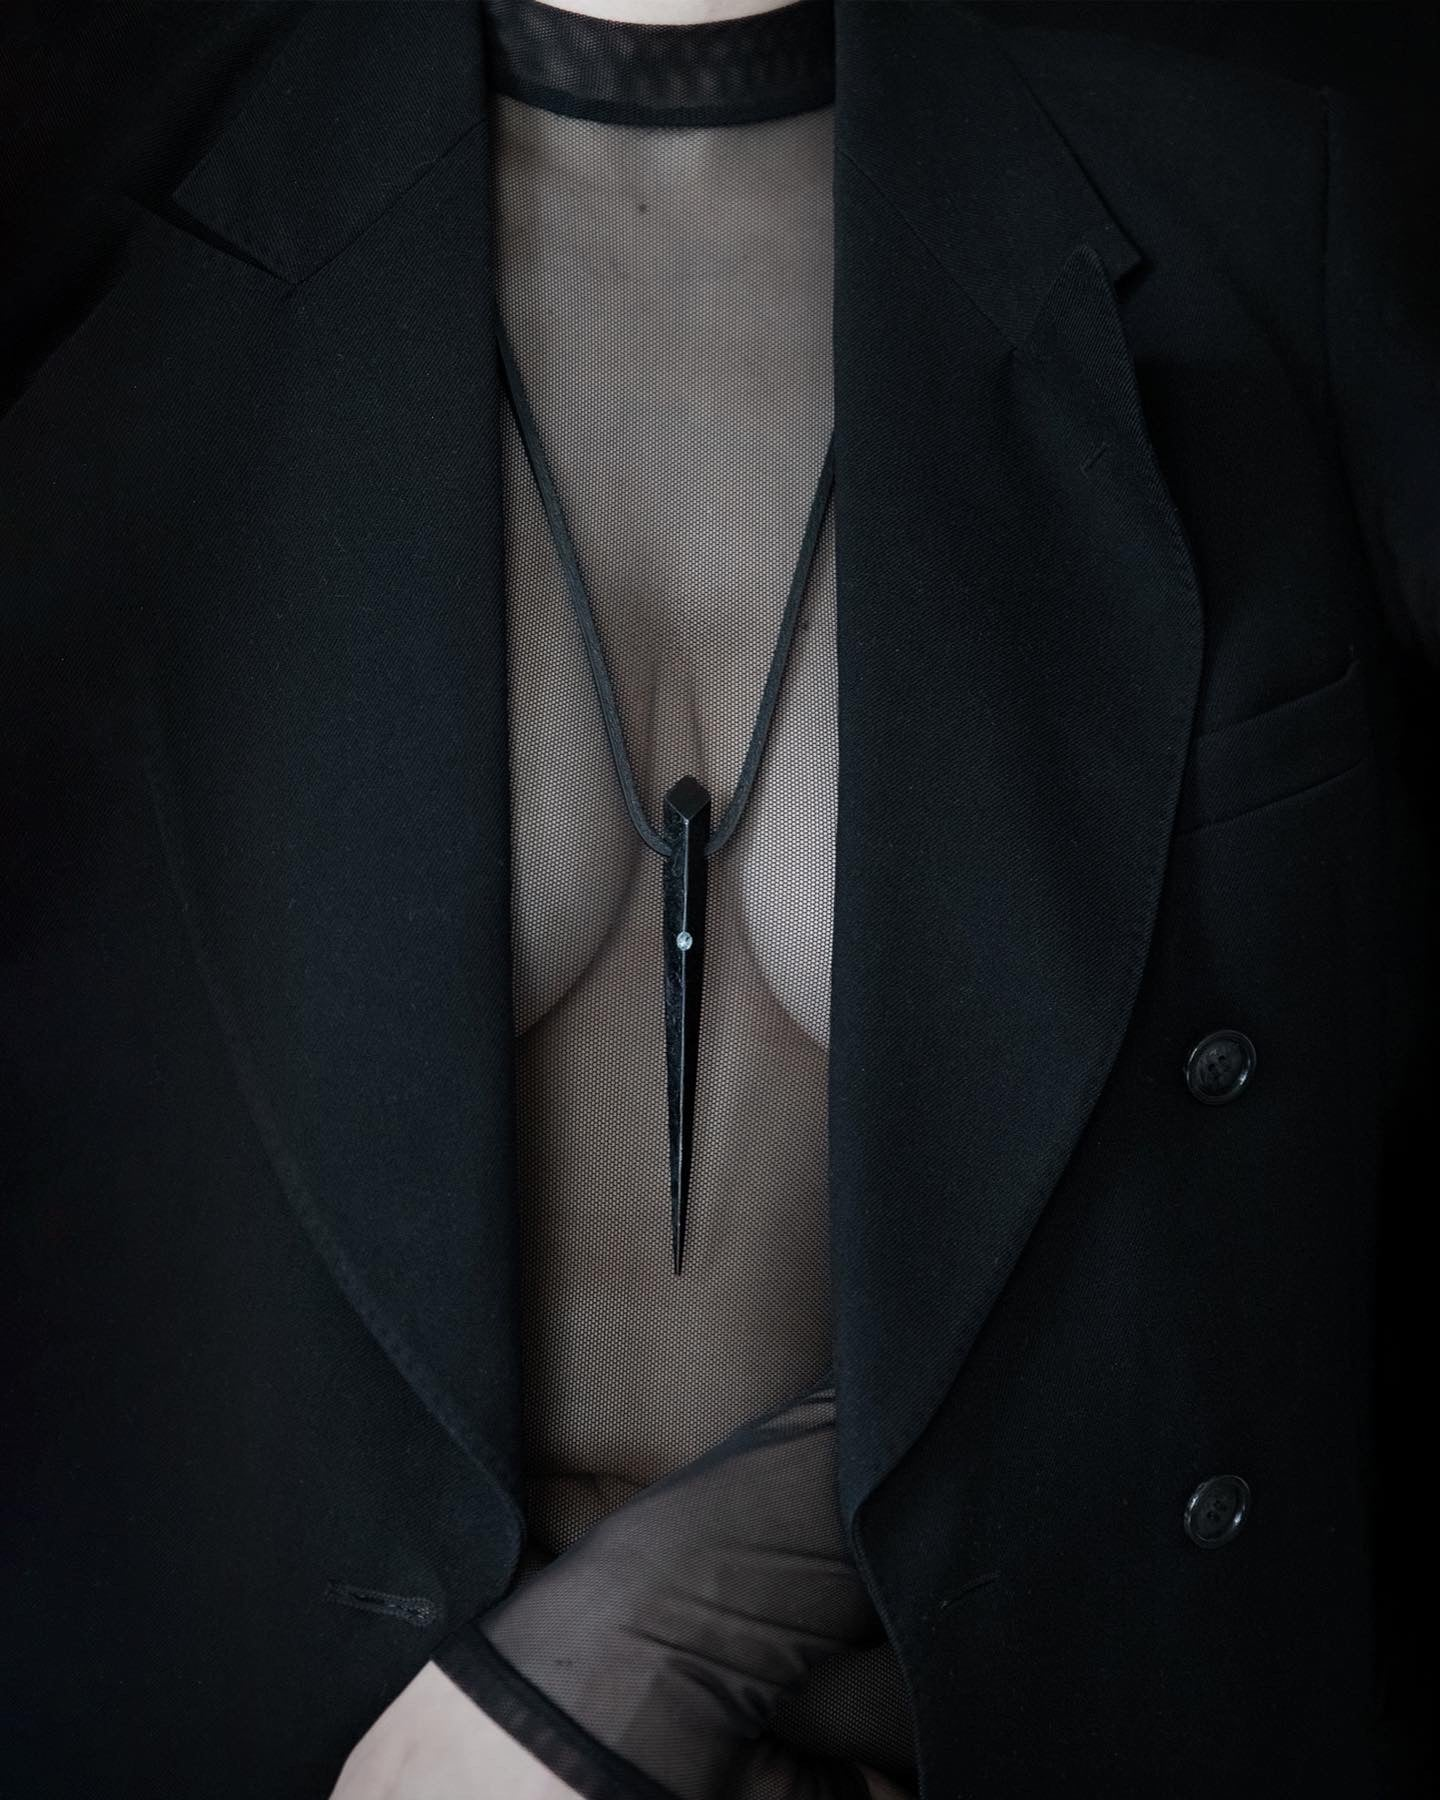 SINGLE SPEAR NECKLACE II